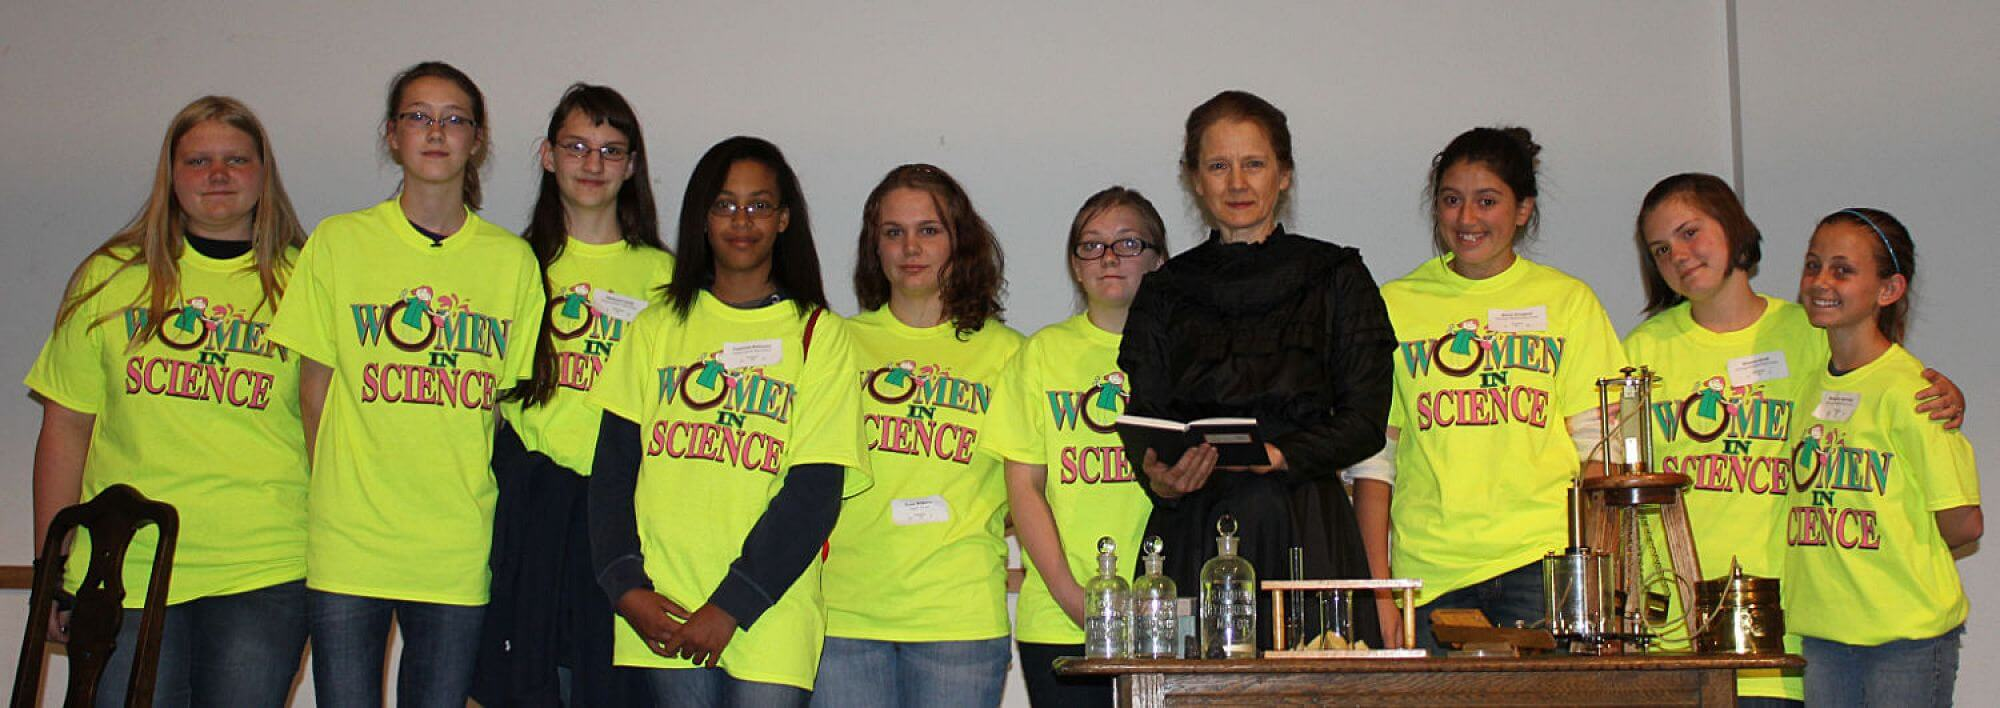 Visit with Marie Curie for Women in Science Day